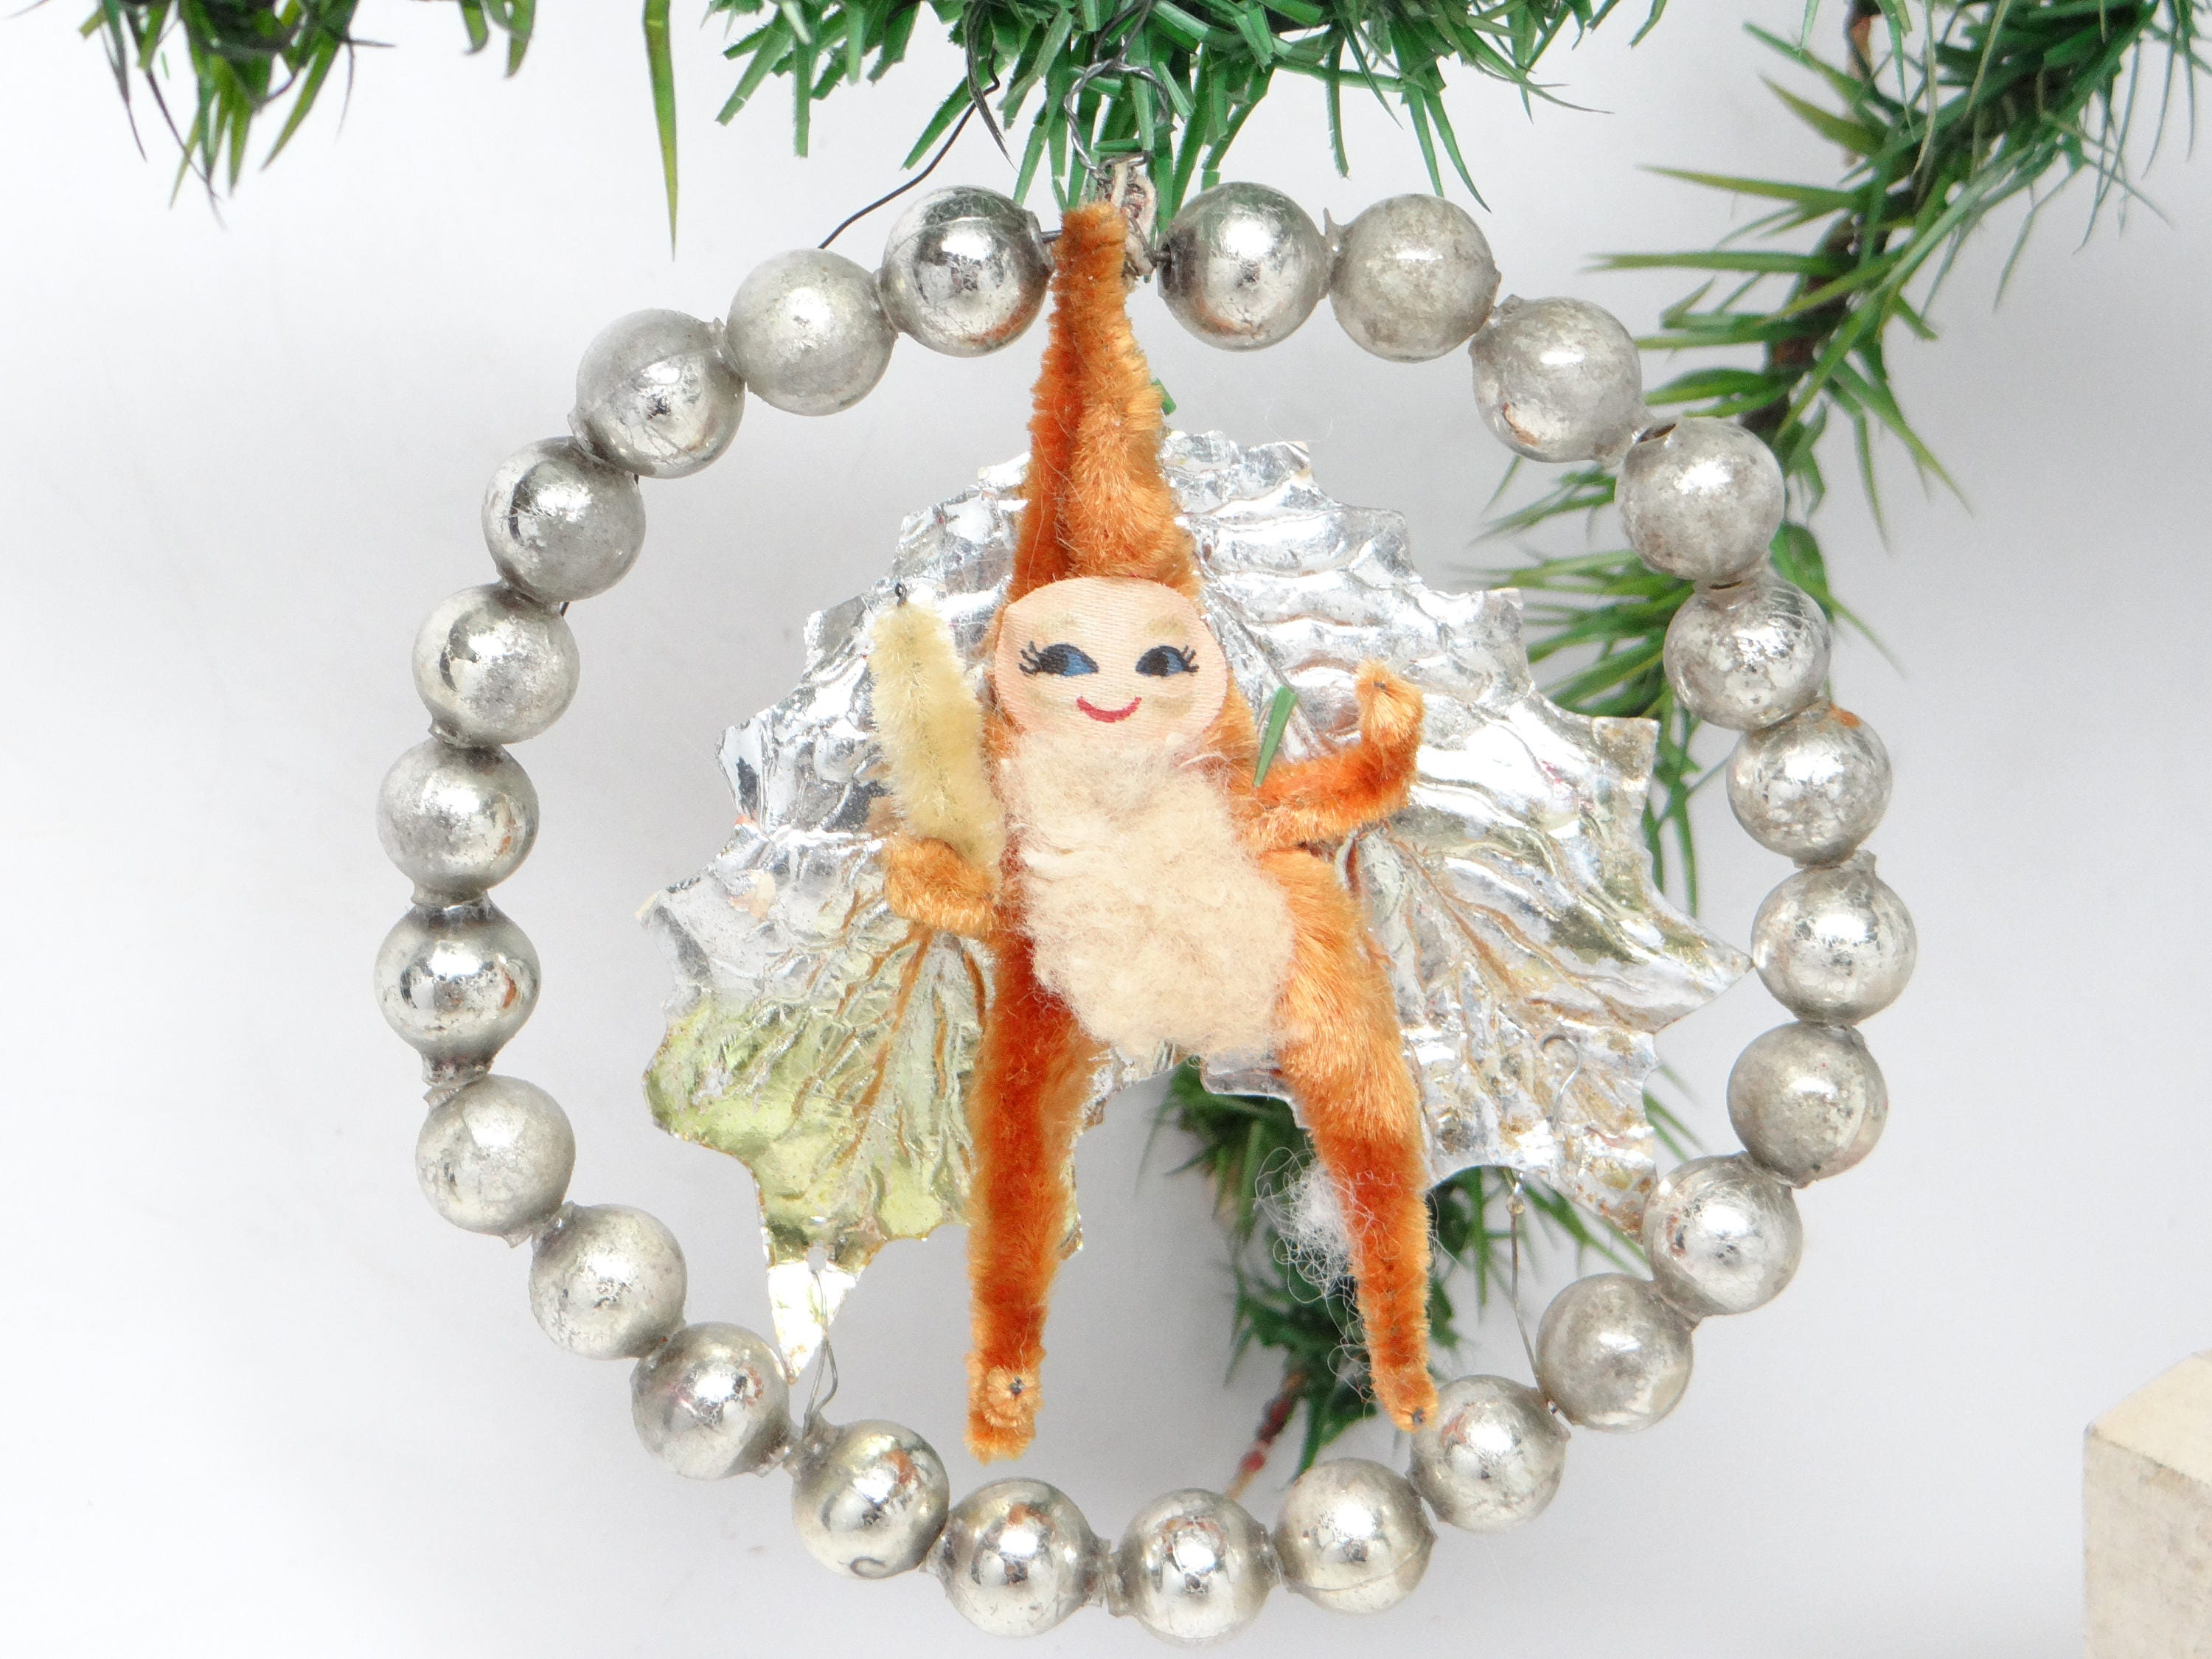 zoom Vintage Santa in Beaded Christmas Wreath